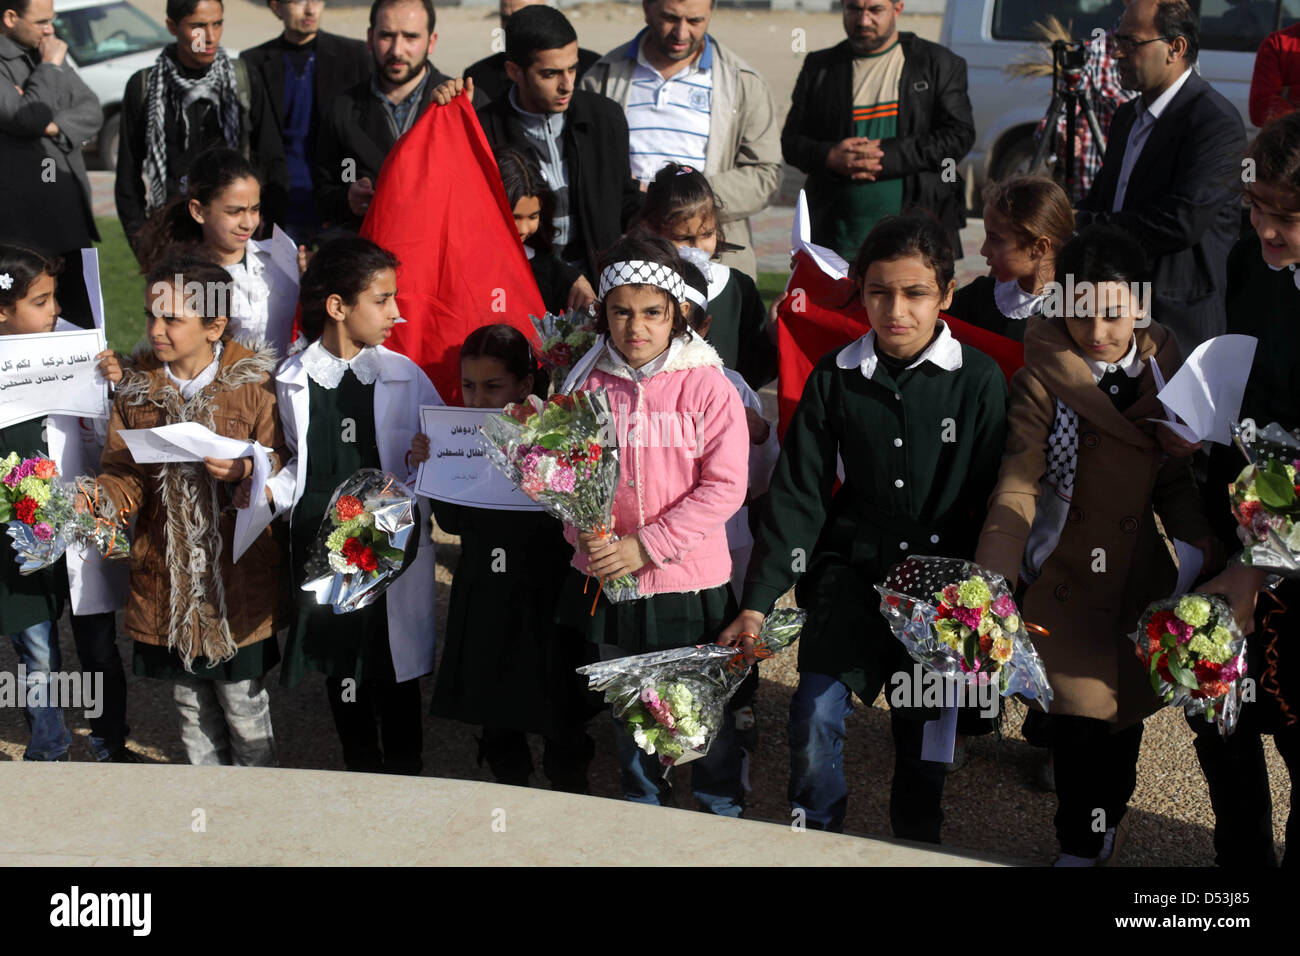 Gaza City, Gaza Strip, Palestinian Territory. 23rd March 2013. Palestinian schoolgirls lay flowers on a statue erected - Stock Image